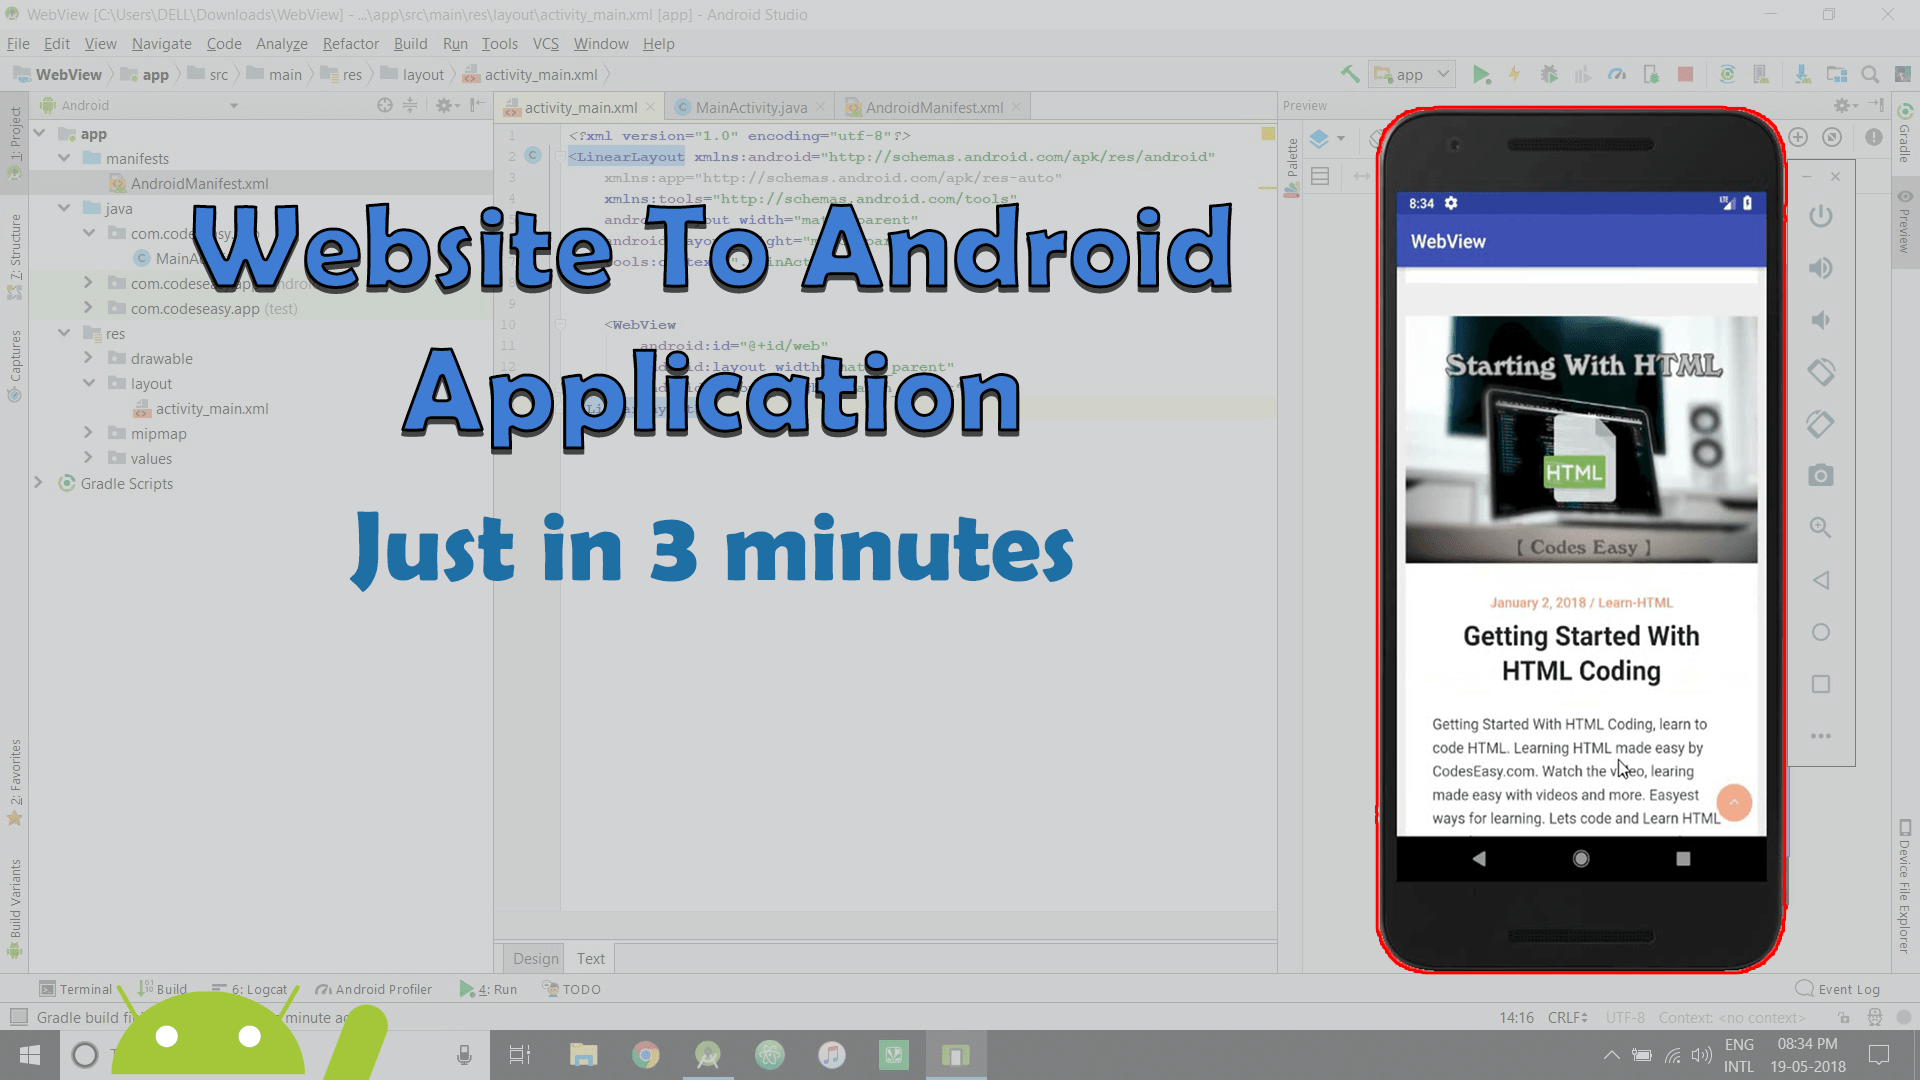 Simple WebView – Website to Android App Just in 3 Minutes